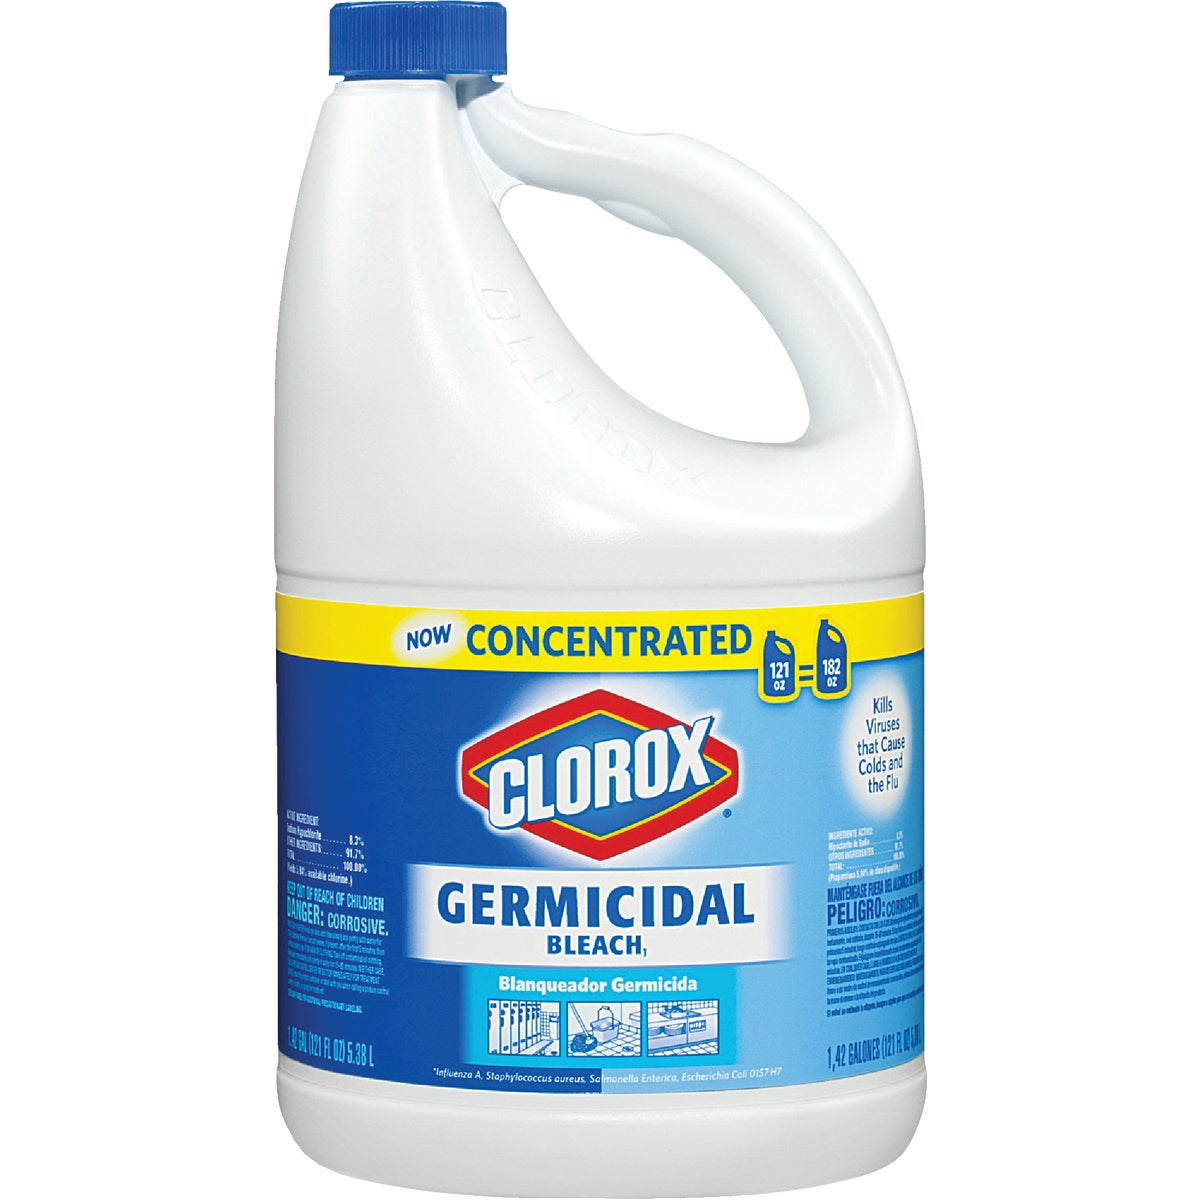 121OZGERM CONC BLEACH - 30790 by Clorox/home Cleaning